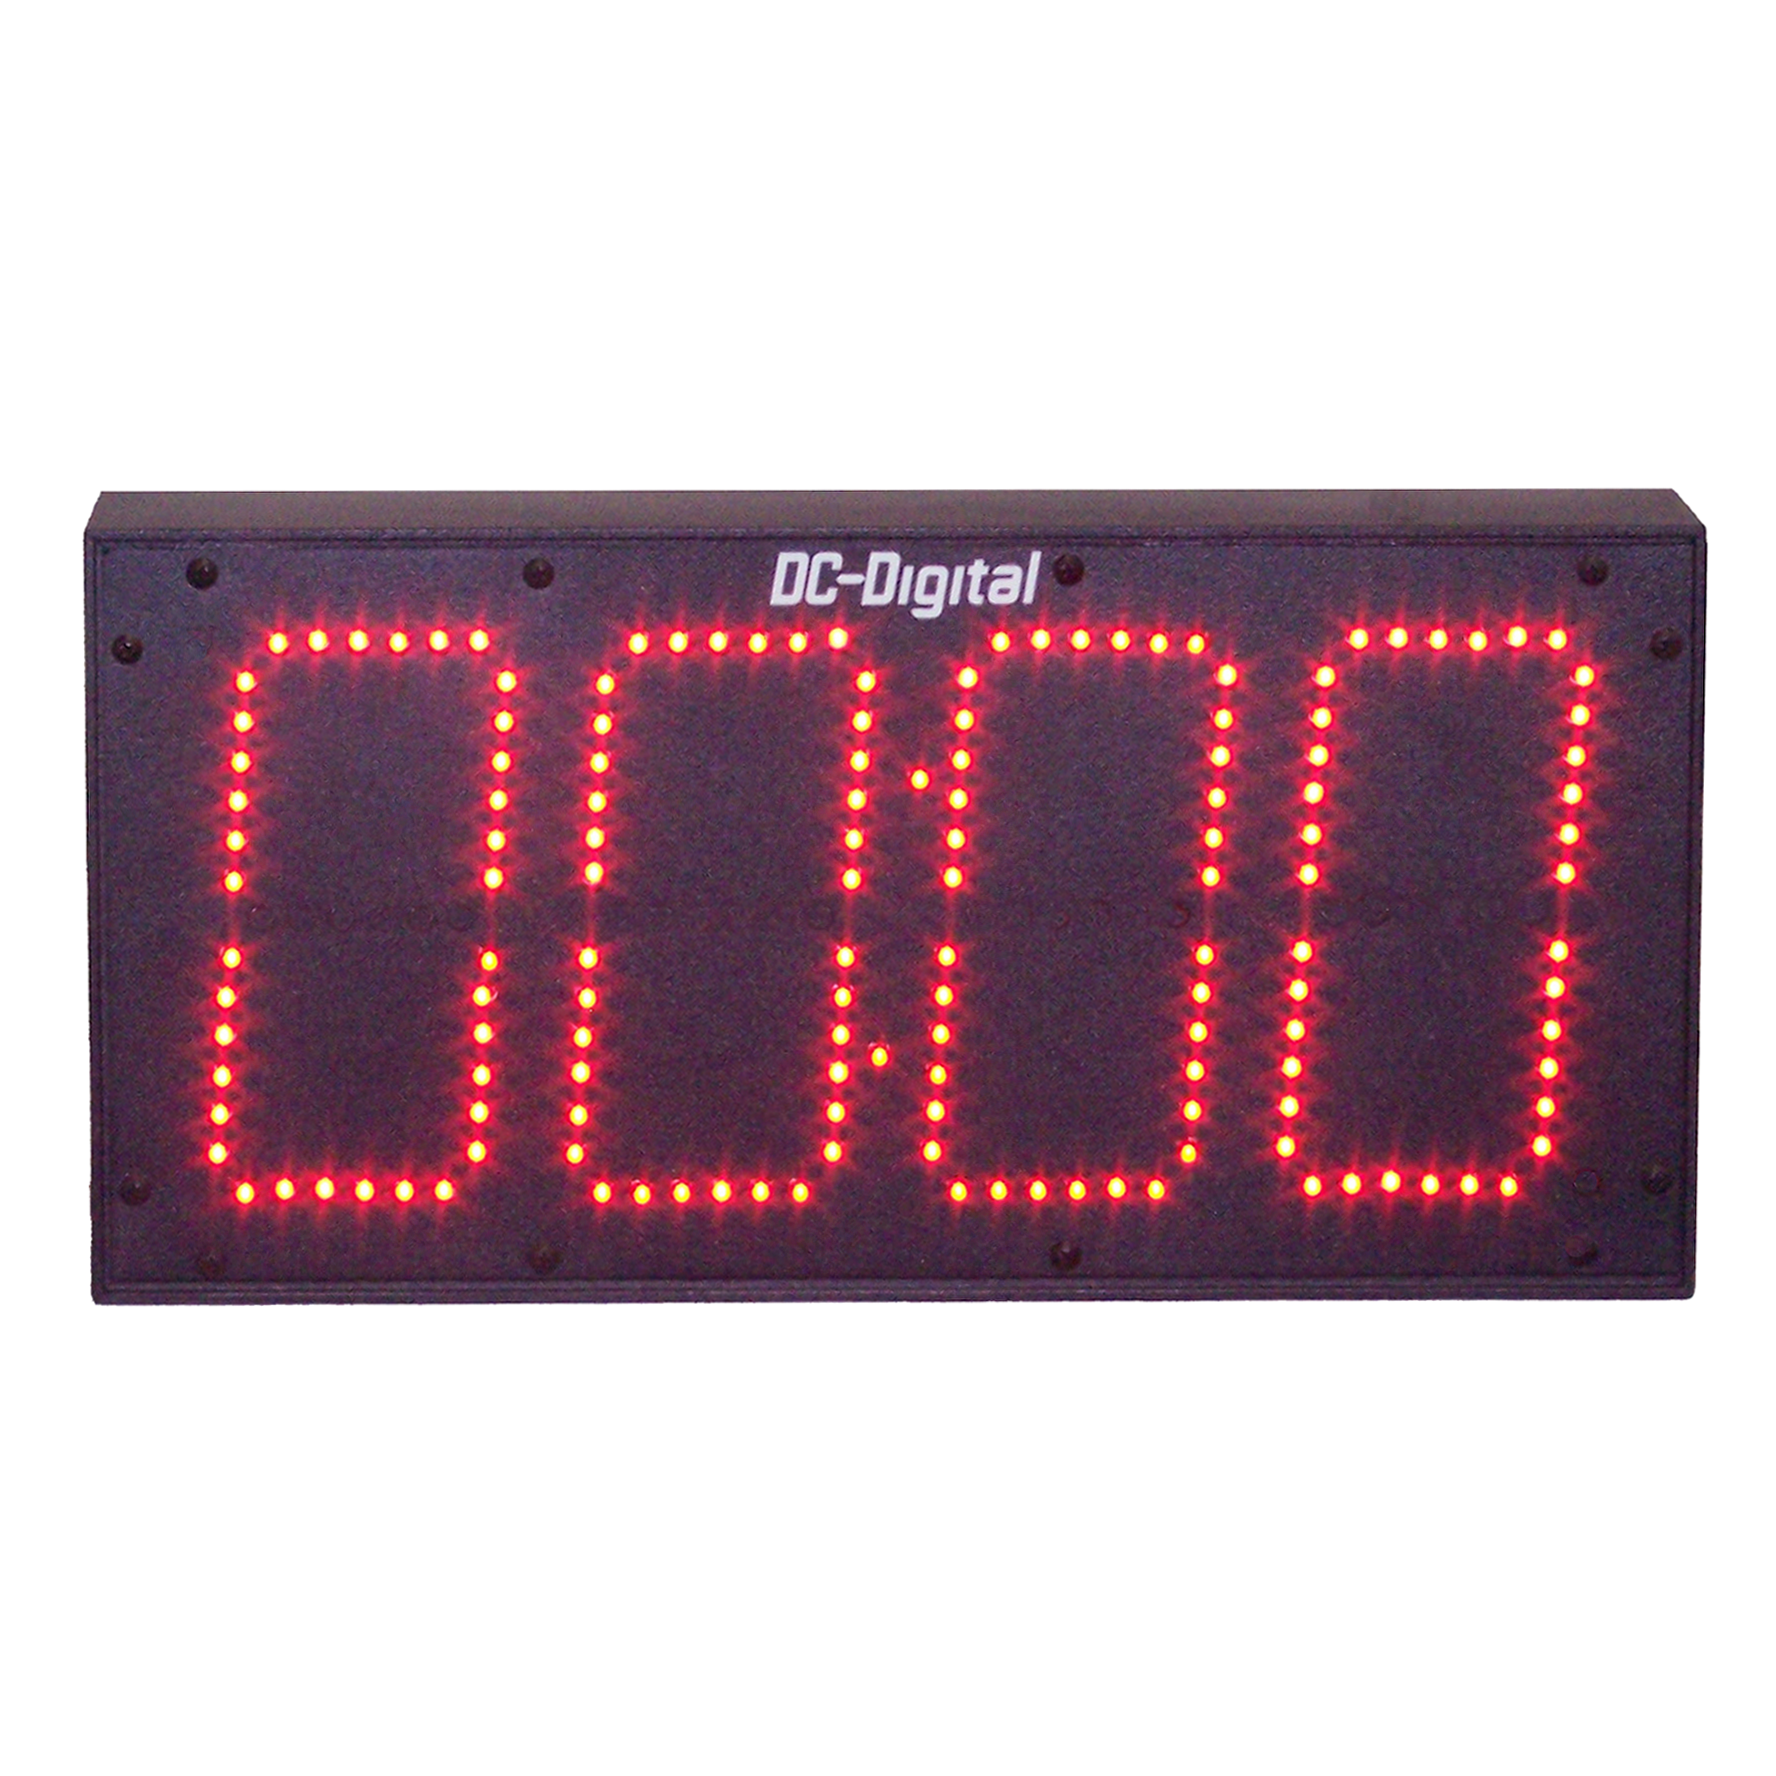 (DC-60T-UP-TERM) 6.0 Inch LED Digital, Multi-Input (PLC-Relay-Switch-Sensor) Controlled, Count Up Timer, Shift Digit Technology (OUTDOOR)